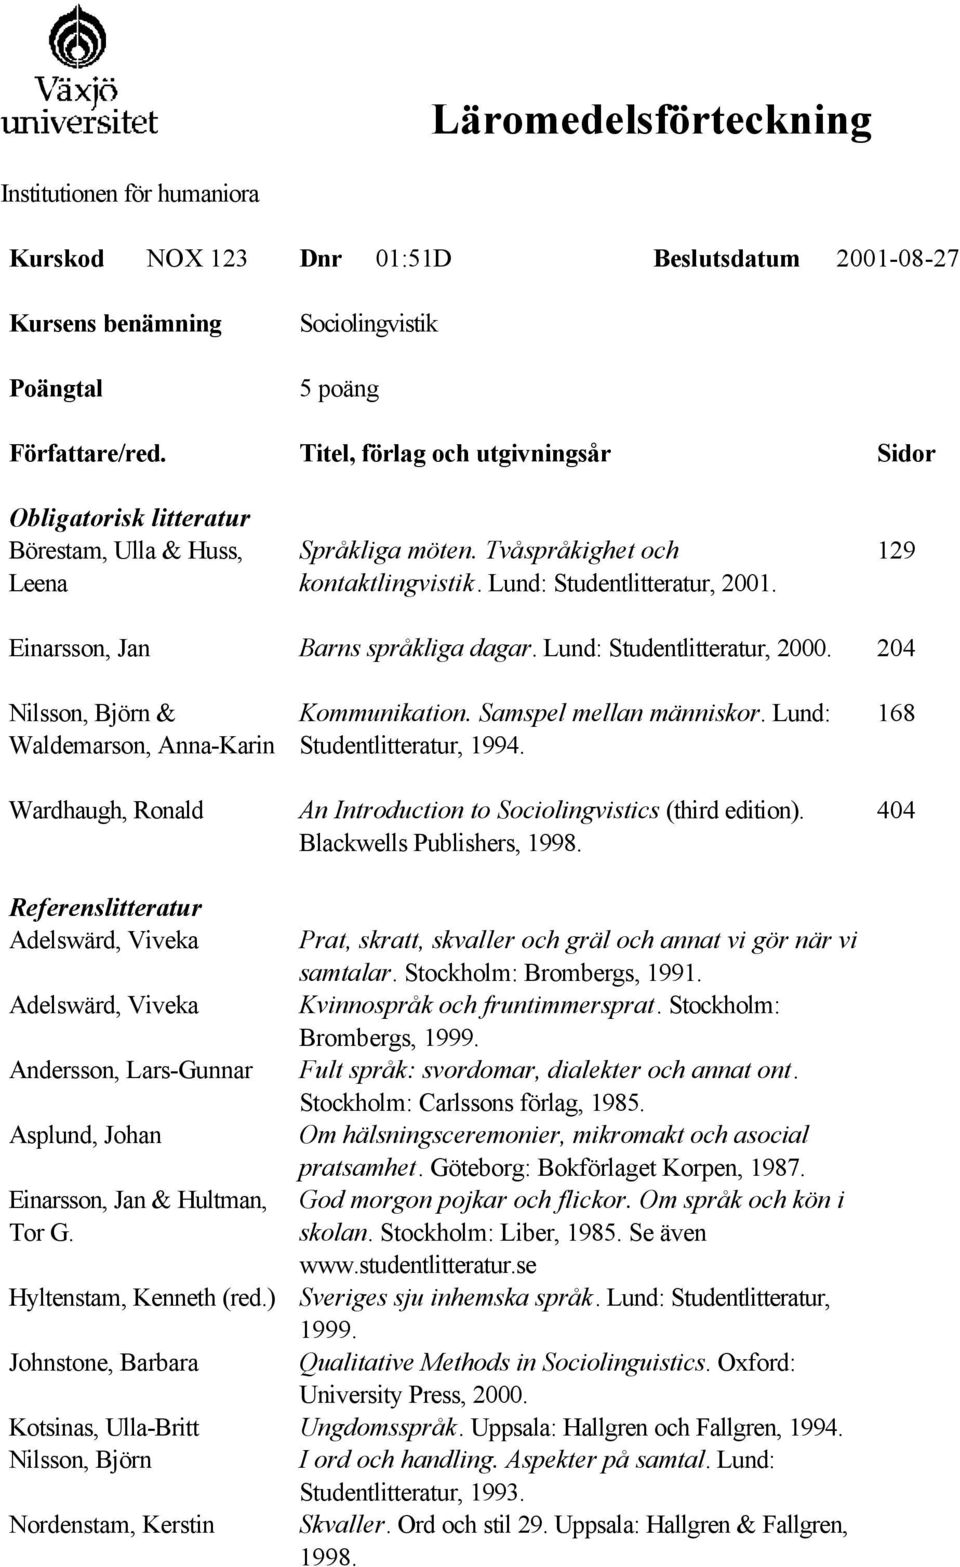 204 Nilsson, Björn & Waldemarson, Anna-Karin Wardhaugh, Ronald Kommunikation. Samspel mellan människor. Lund: Studentlitteratur, 1994. An Introduction to Sociolingvistics (third edition).